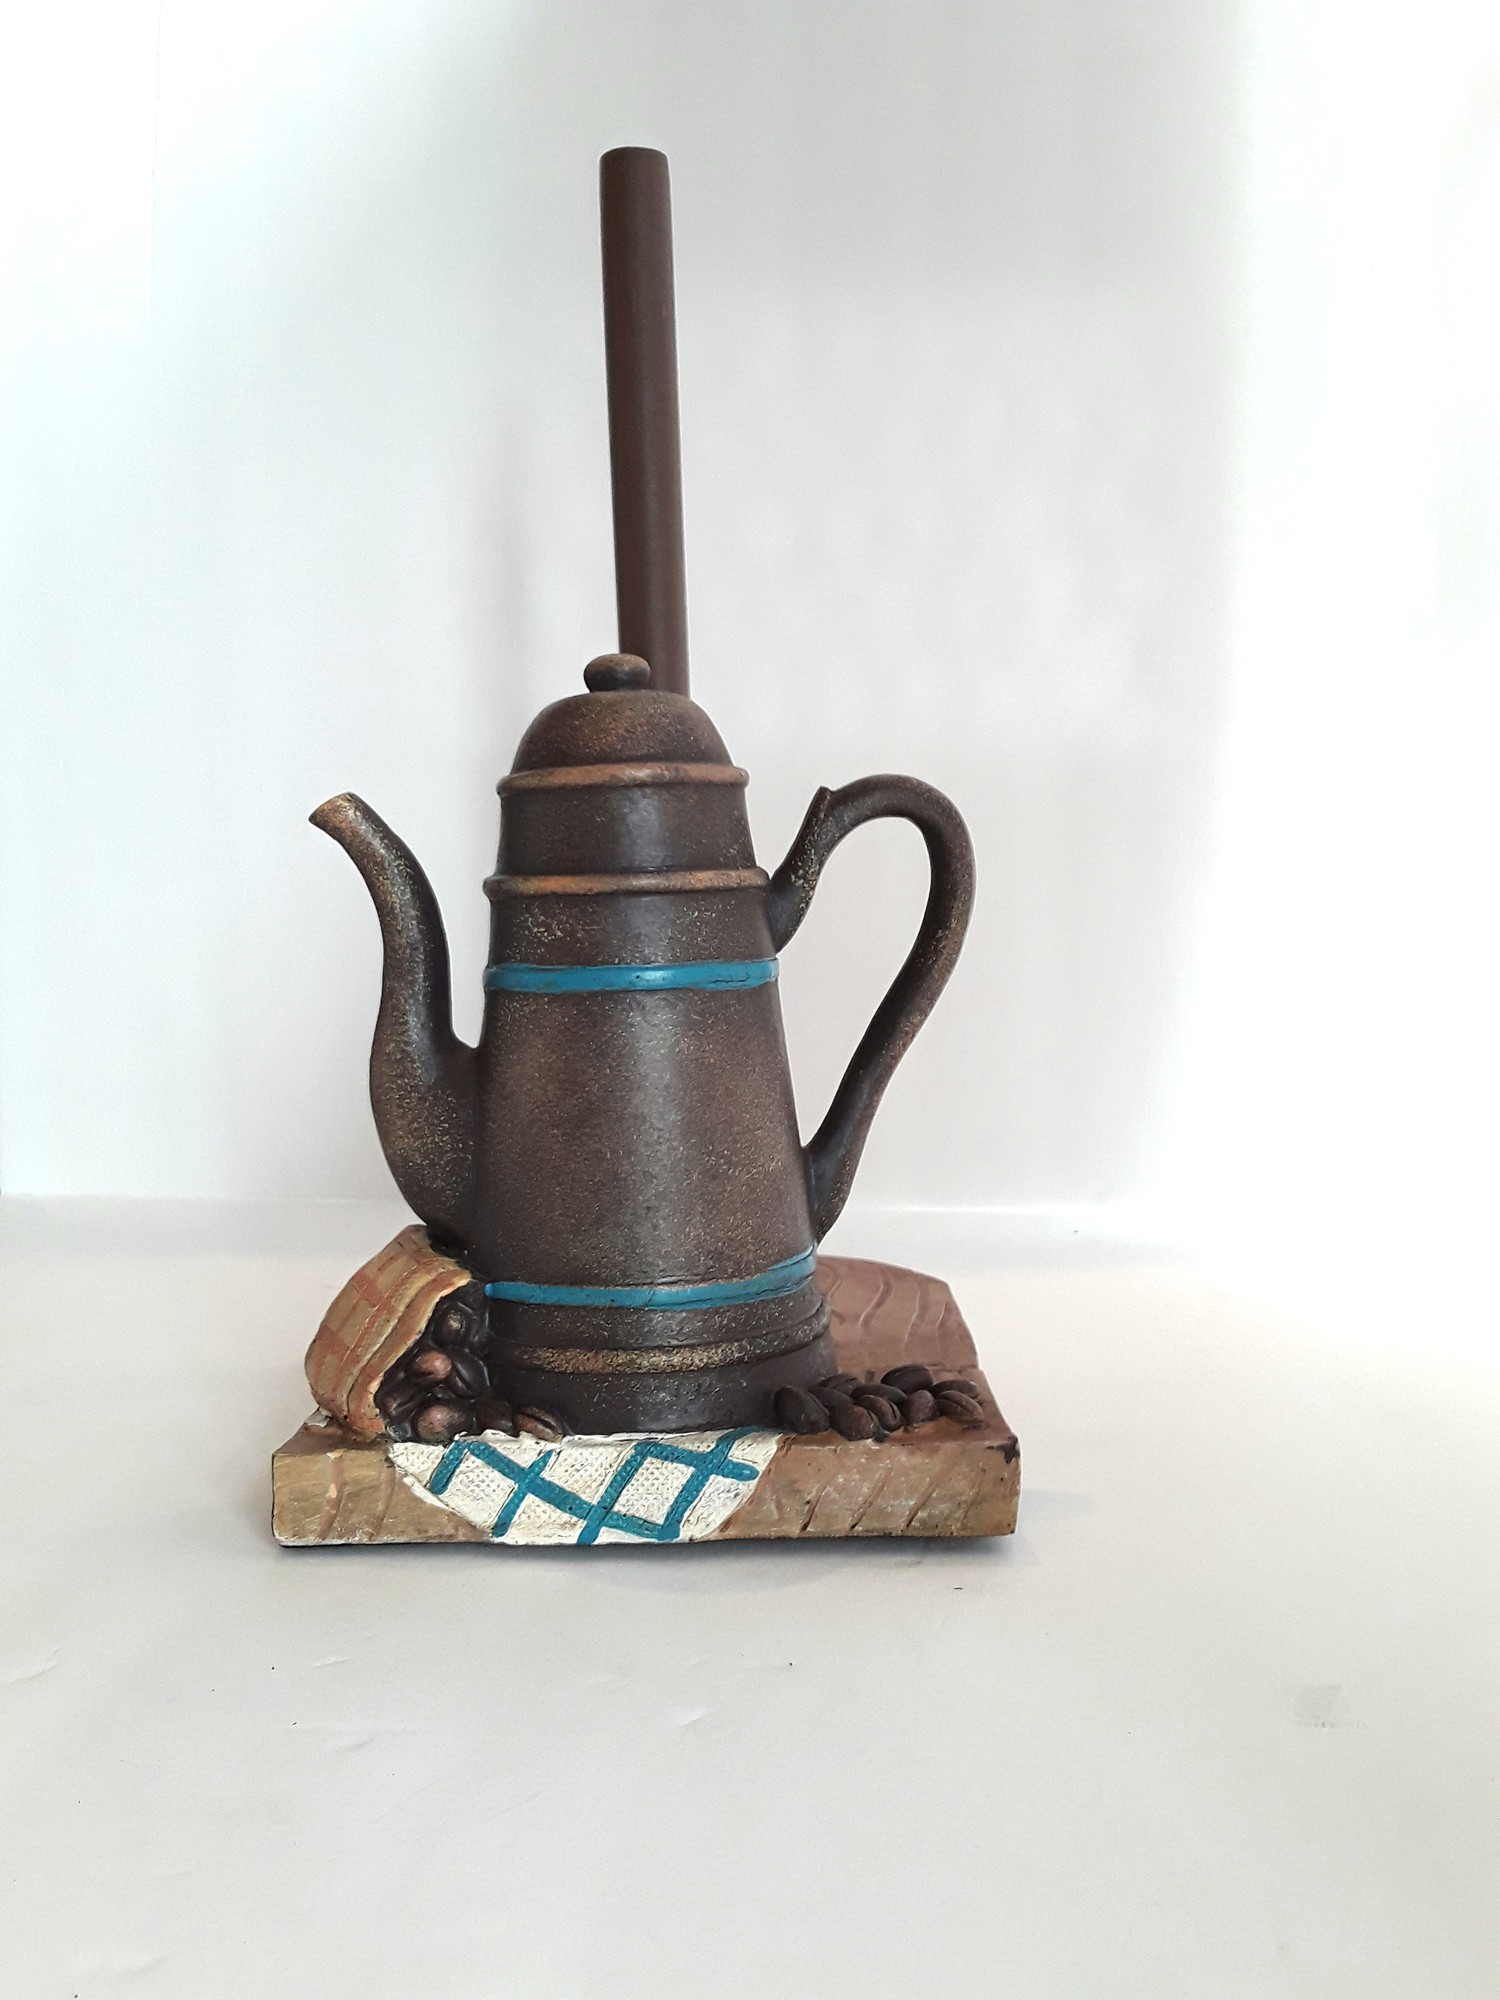 Paper Towel Holder. Cottage cute. Coffee's ready!